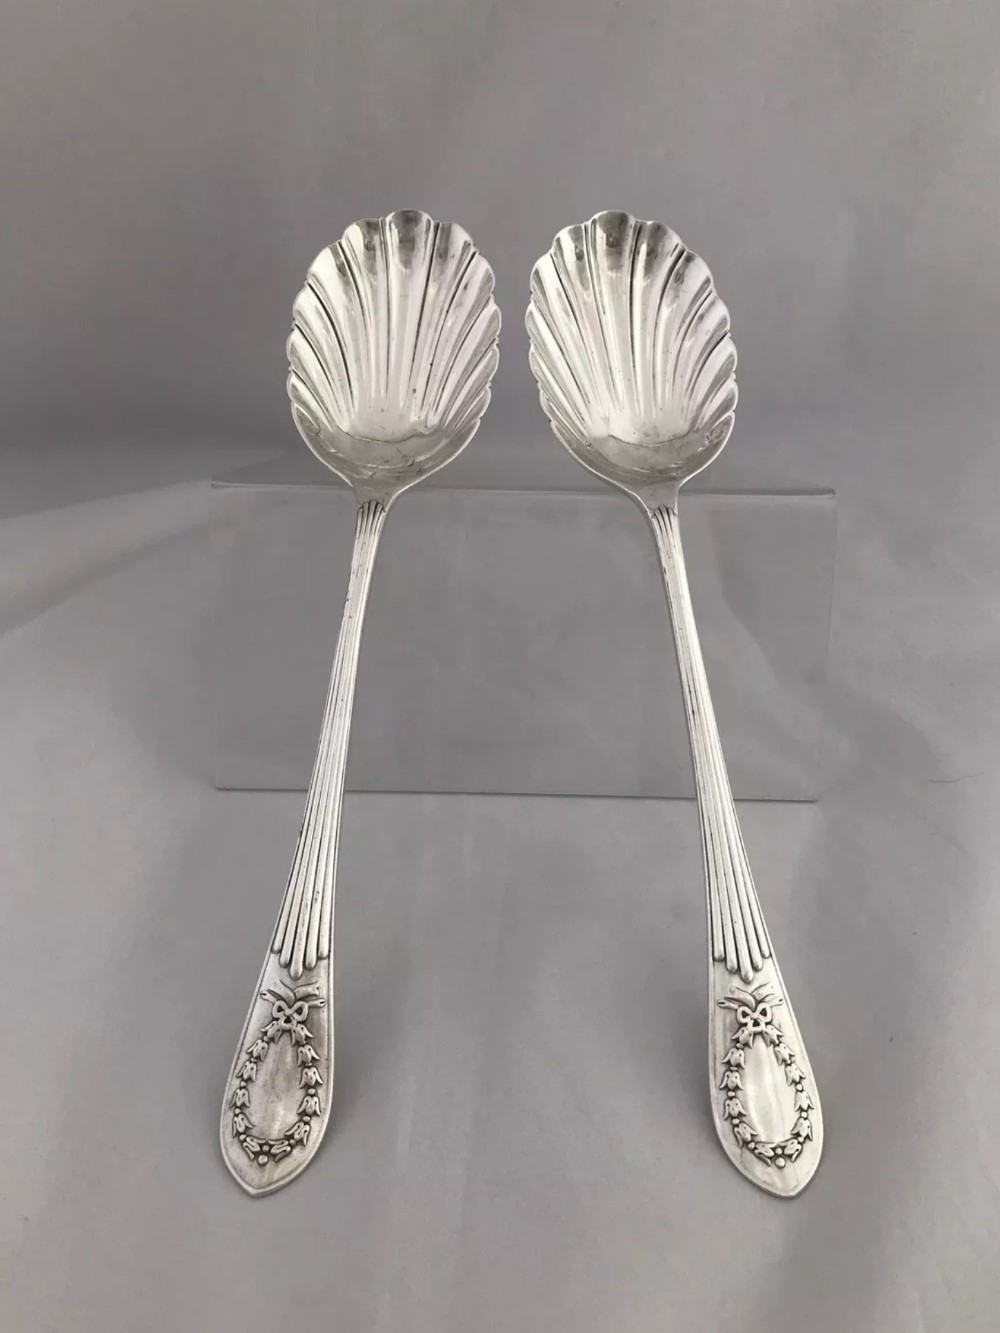 edwardian silver serving spoons 1908 london william hutton